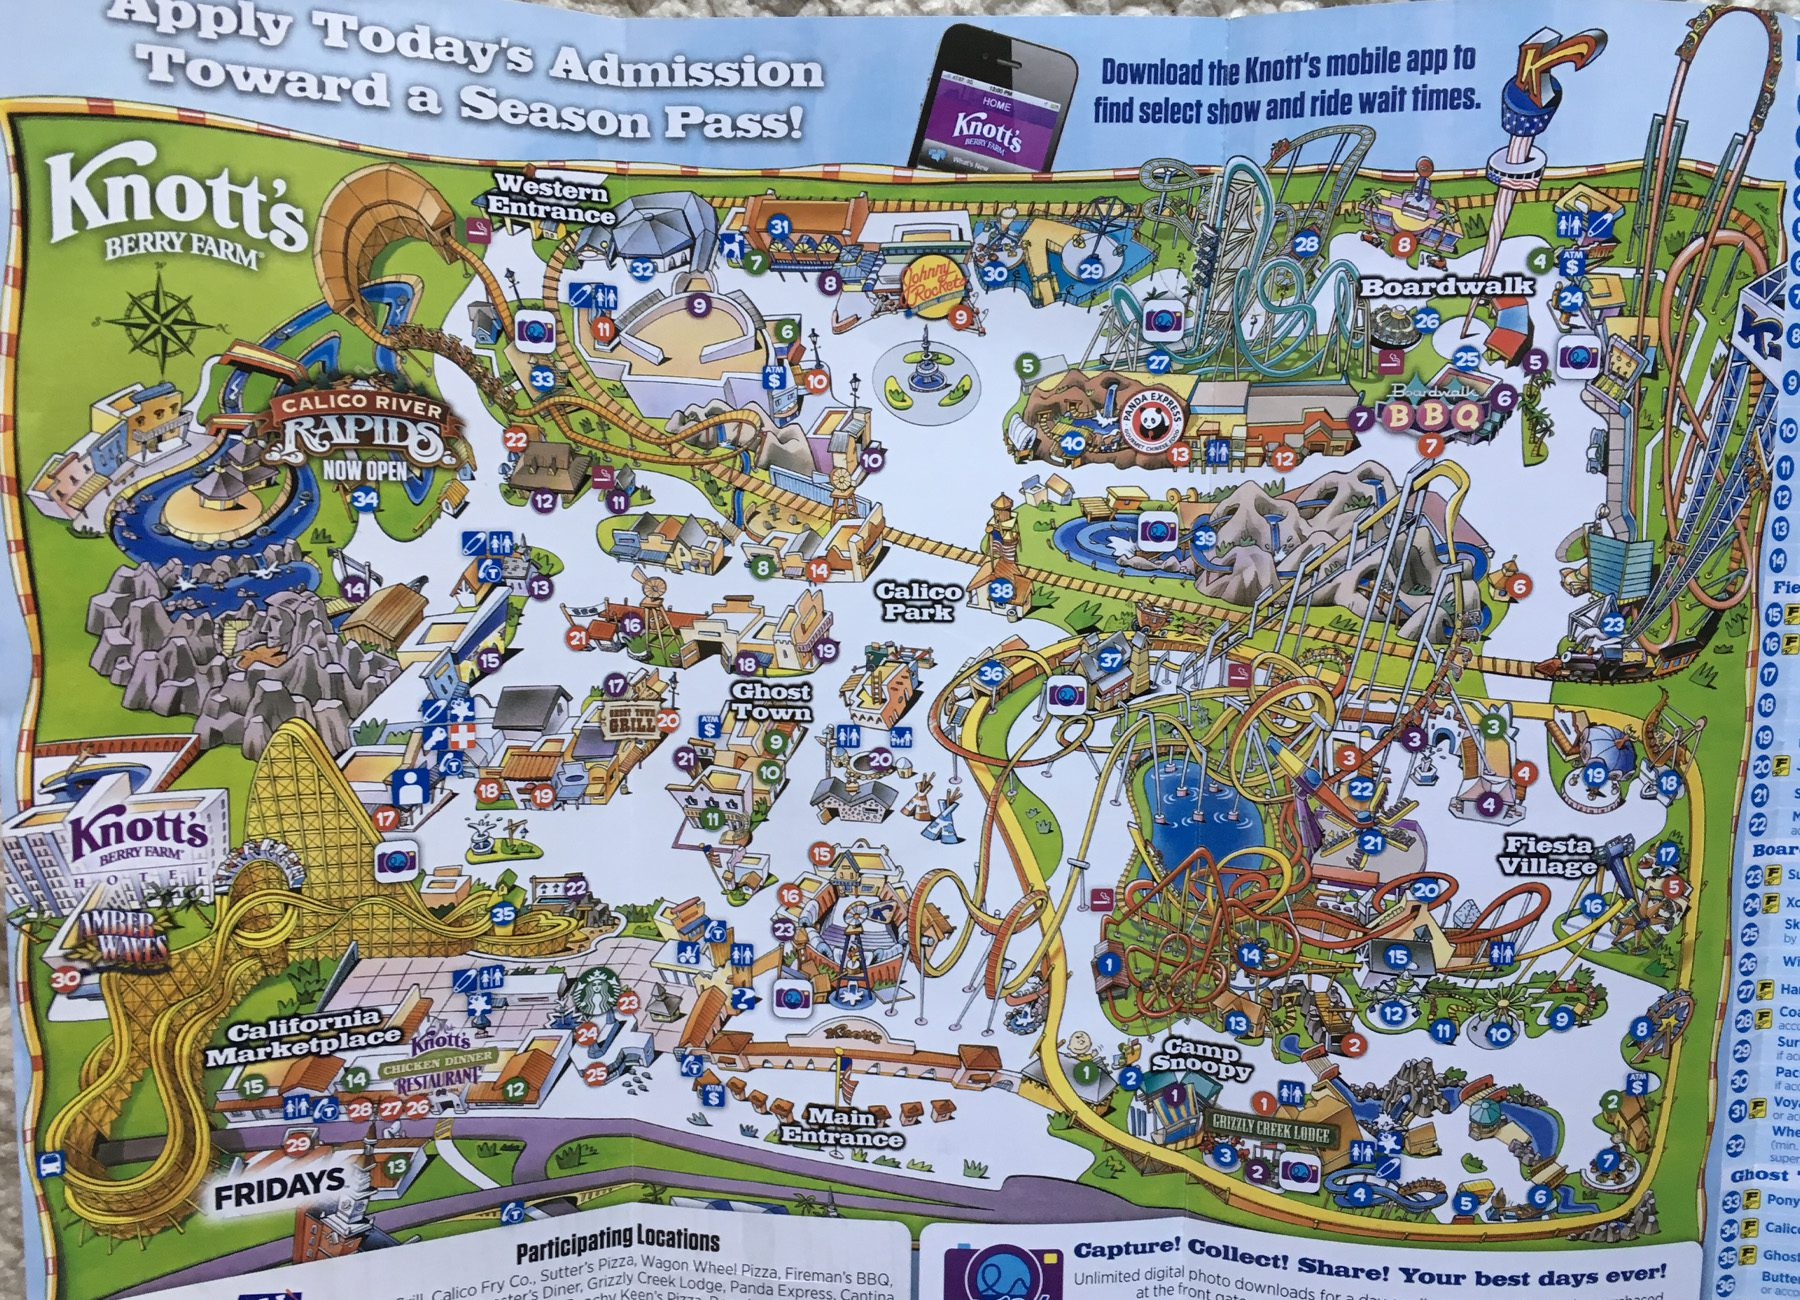 2019 Knotts Merry Farm Map Image